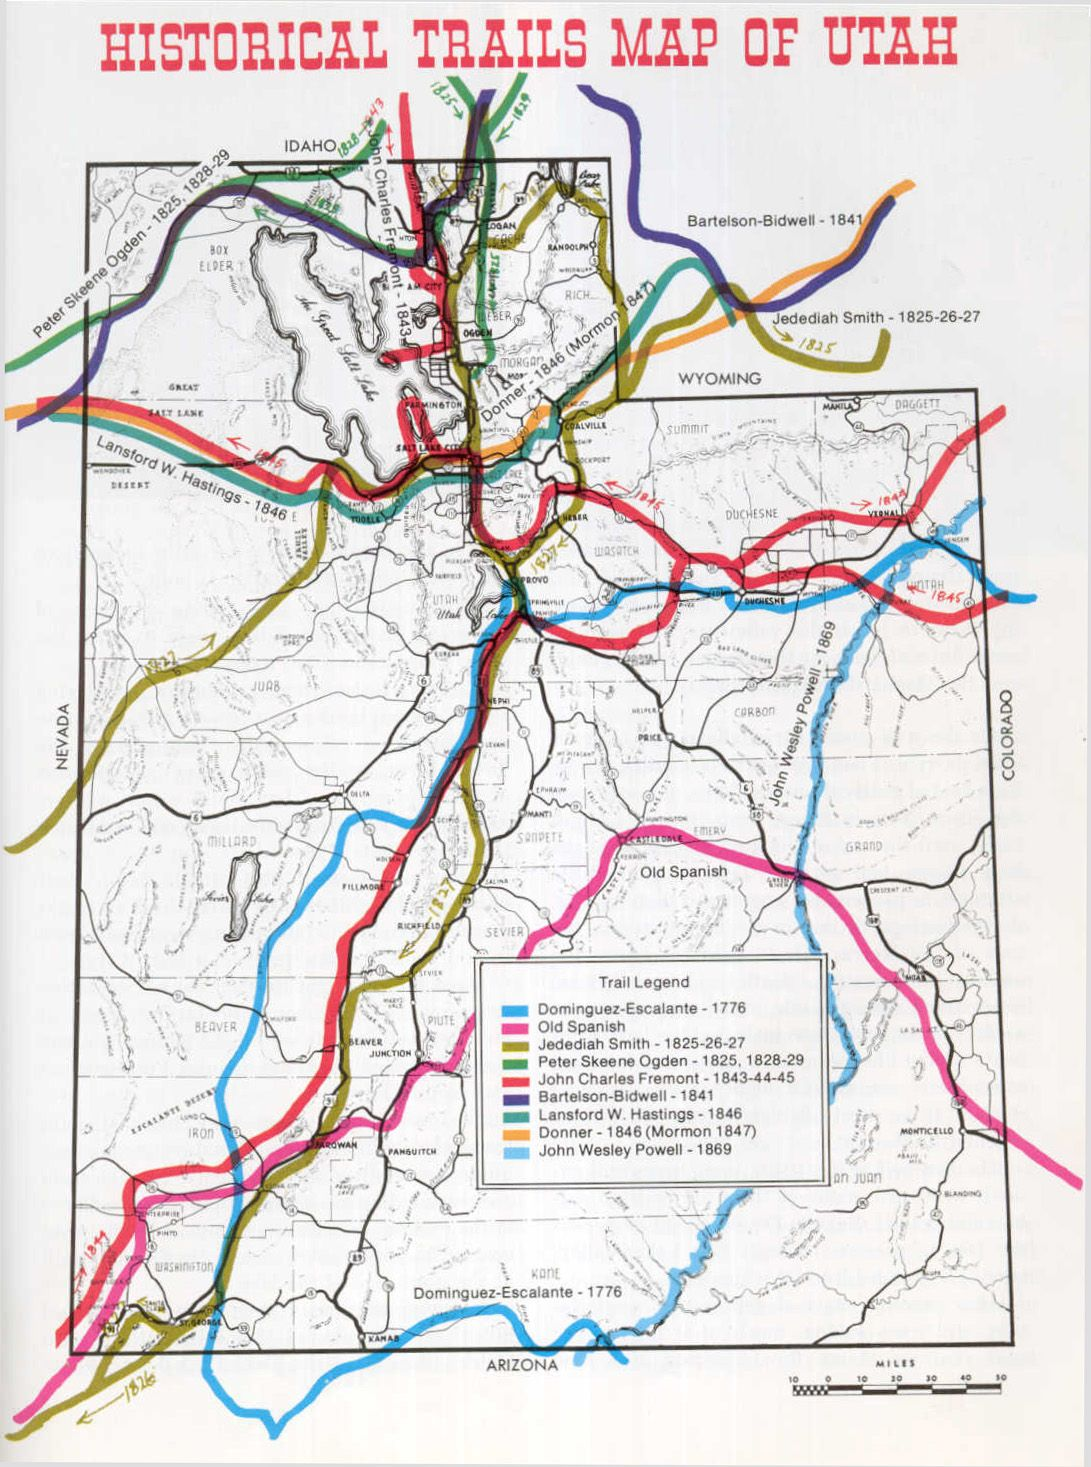 Marysvale Utah Map.Historical Trails Map Of Utah Trail Maps Trail Maps Utah Utah Map